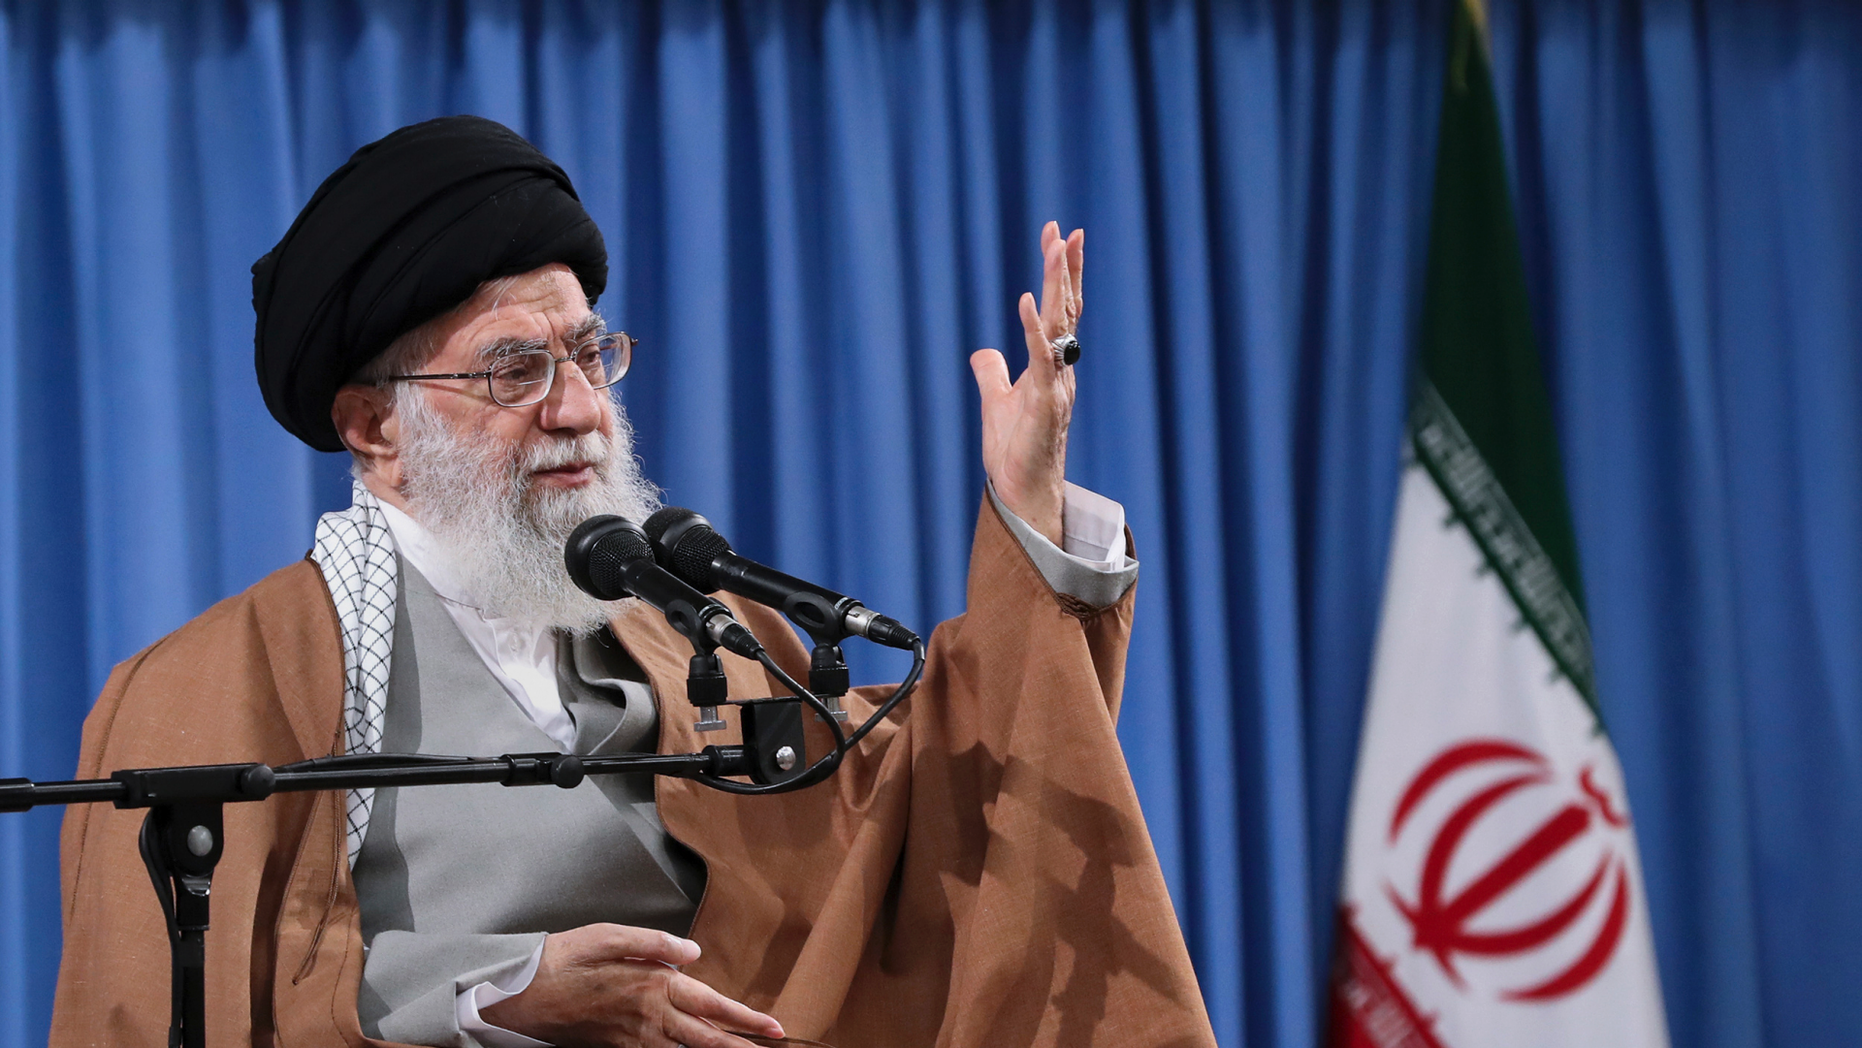 """In this picture released by an official website of the office of the Iranian supreme leader, Supreme Leader Ayatollah Ali Khamenei speaks at a meeting with a group of  Revolutionary Guards and their families, in Tehran, Iran, Tuesday, April 9, 2019. Khamenei praised Iran's Revolutionary Guard and said America's """"evil designs would not harm"""" the force after the White House designated the guard a foreign terrorist organization. (Office of the Iranian Supreme Leader via AP)"""